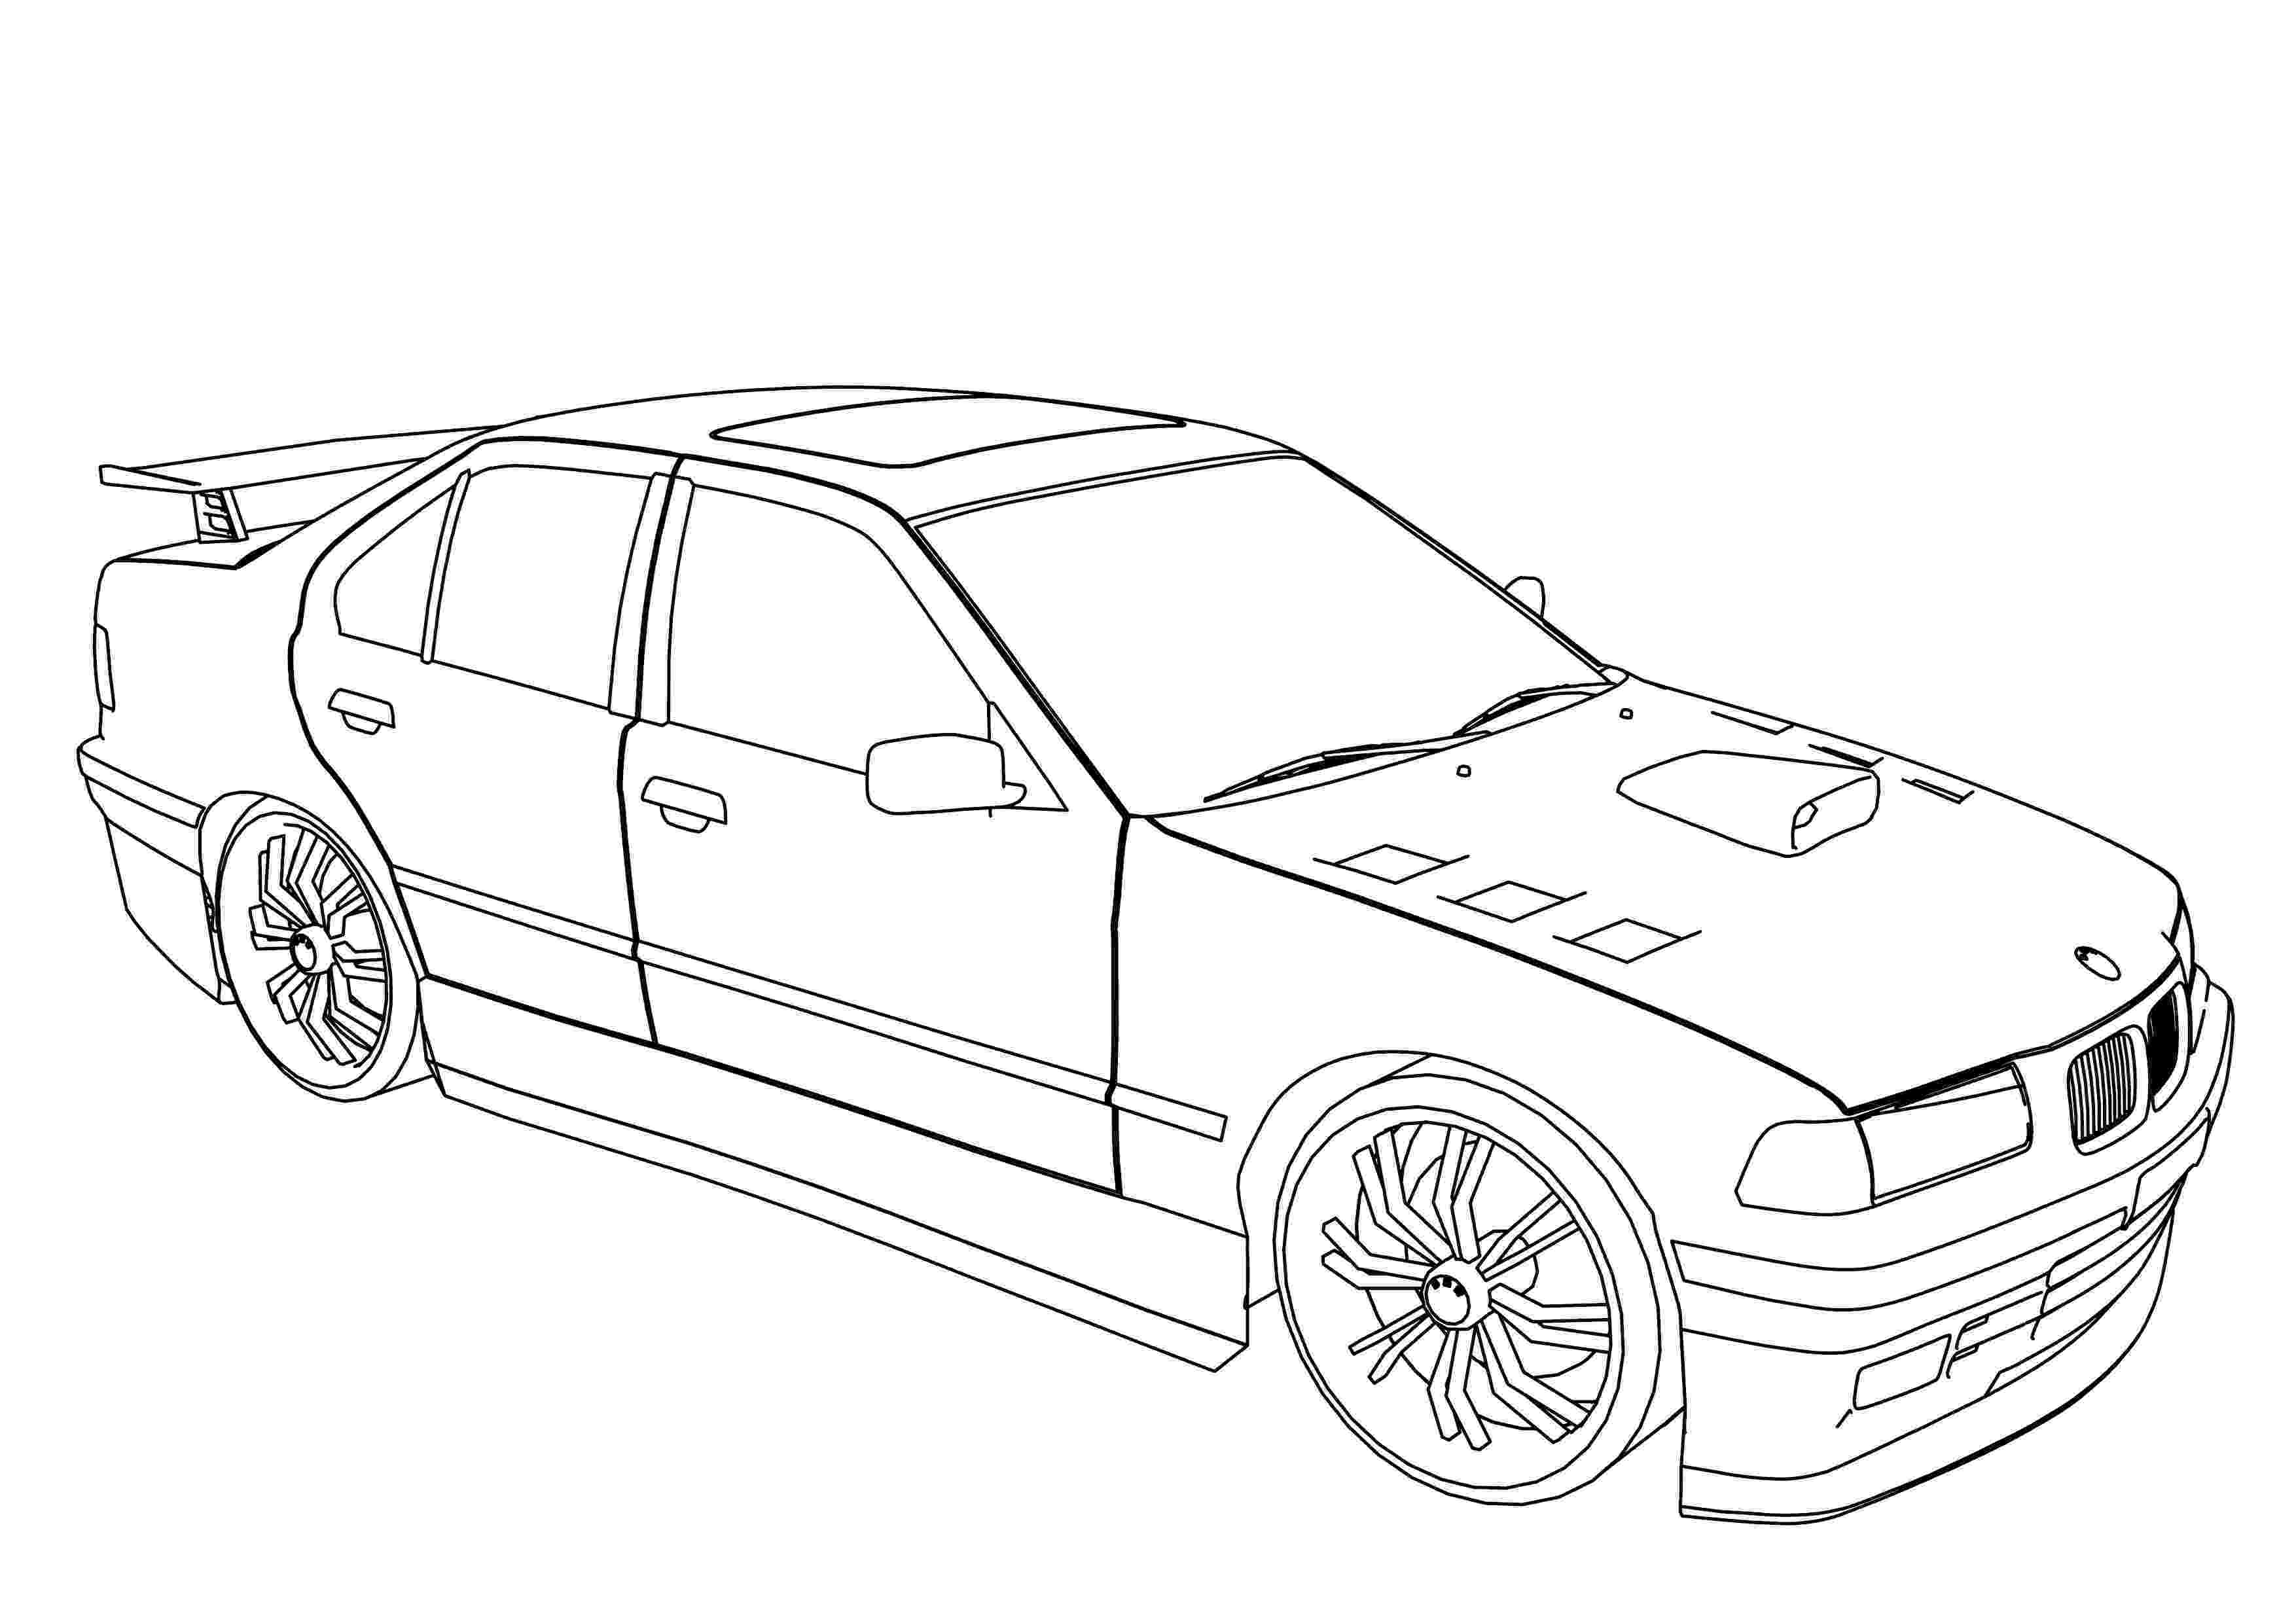 coloring pages sports cars lamborghini police car coloring pages 5 image pages coloring cars sports